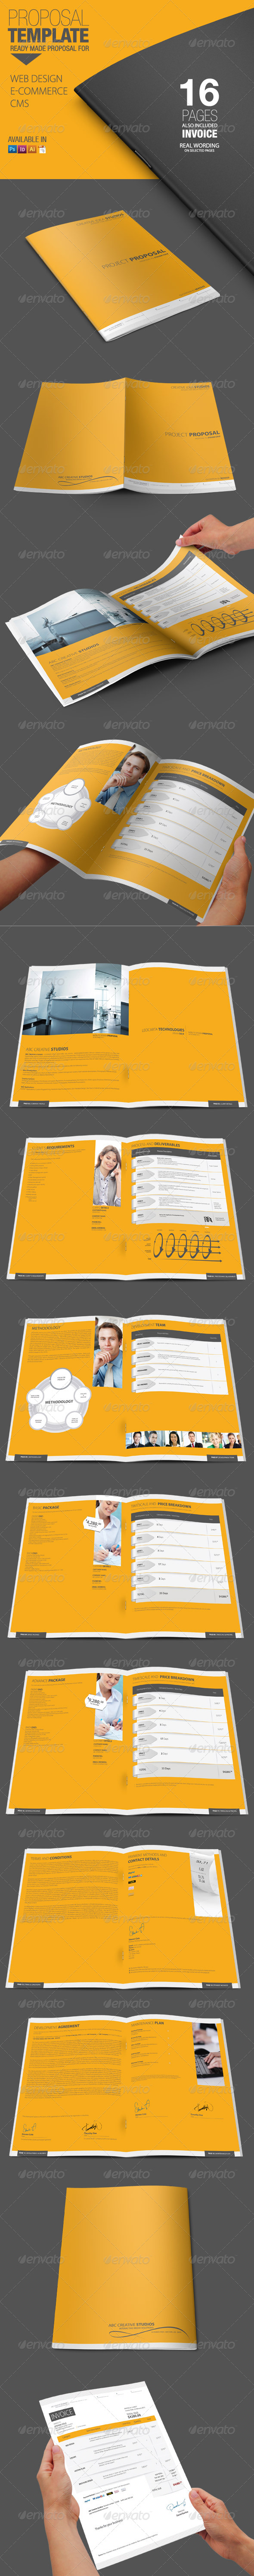 GraphicRiver Proposal Template 4592623